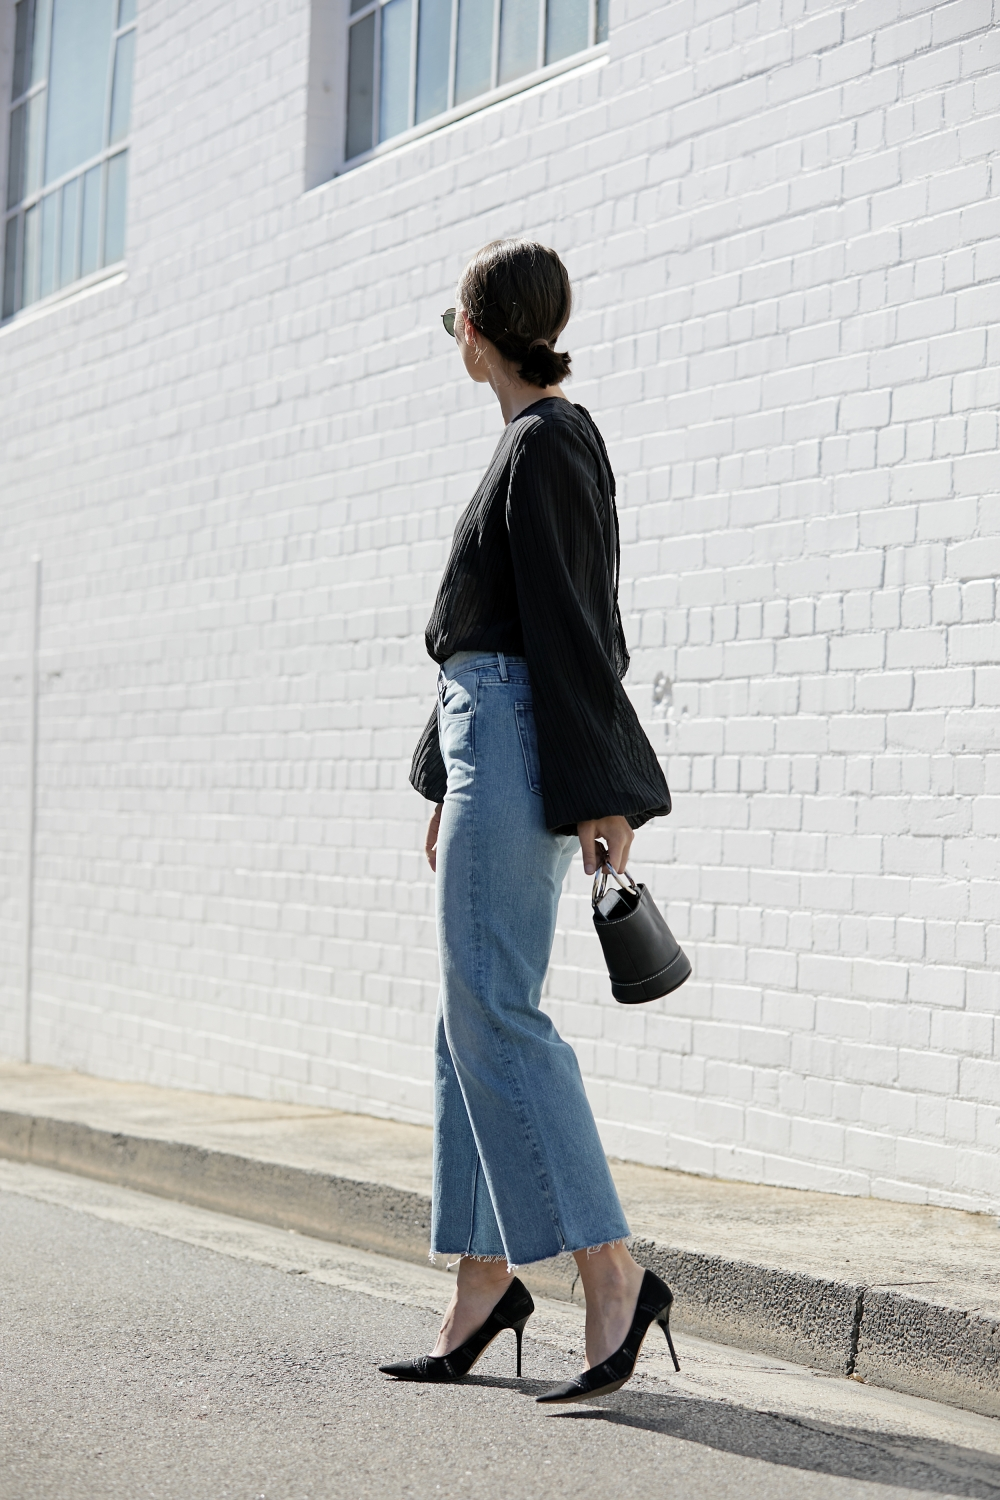 Affordable Under-$100 Date Look — Balloon Sleeve Top, Ring Handle Bag, Cropped Wide-Leg Jeans, Black Heels